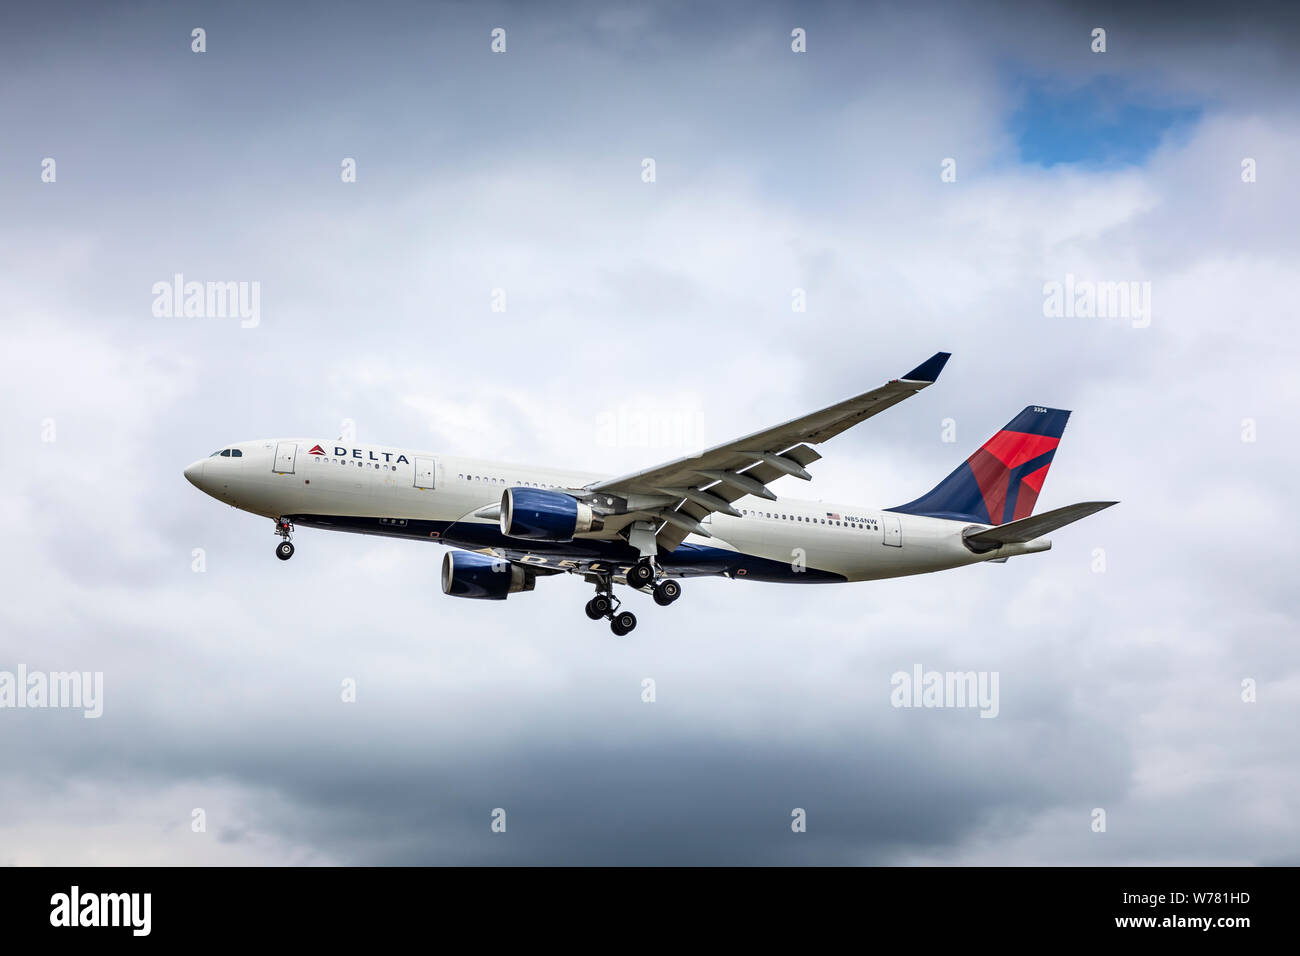 A330 Airliner Stock Photos & A330 Airliner Stock Images - Alamy